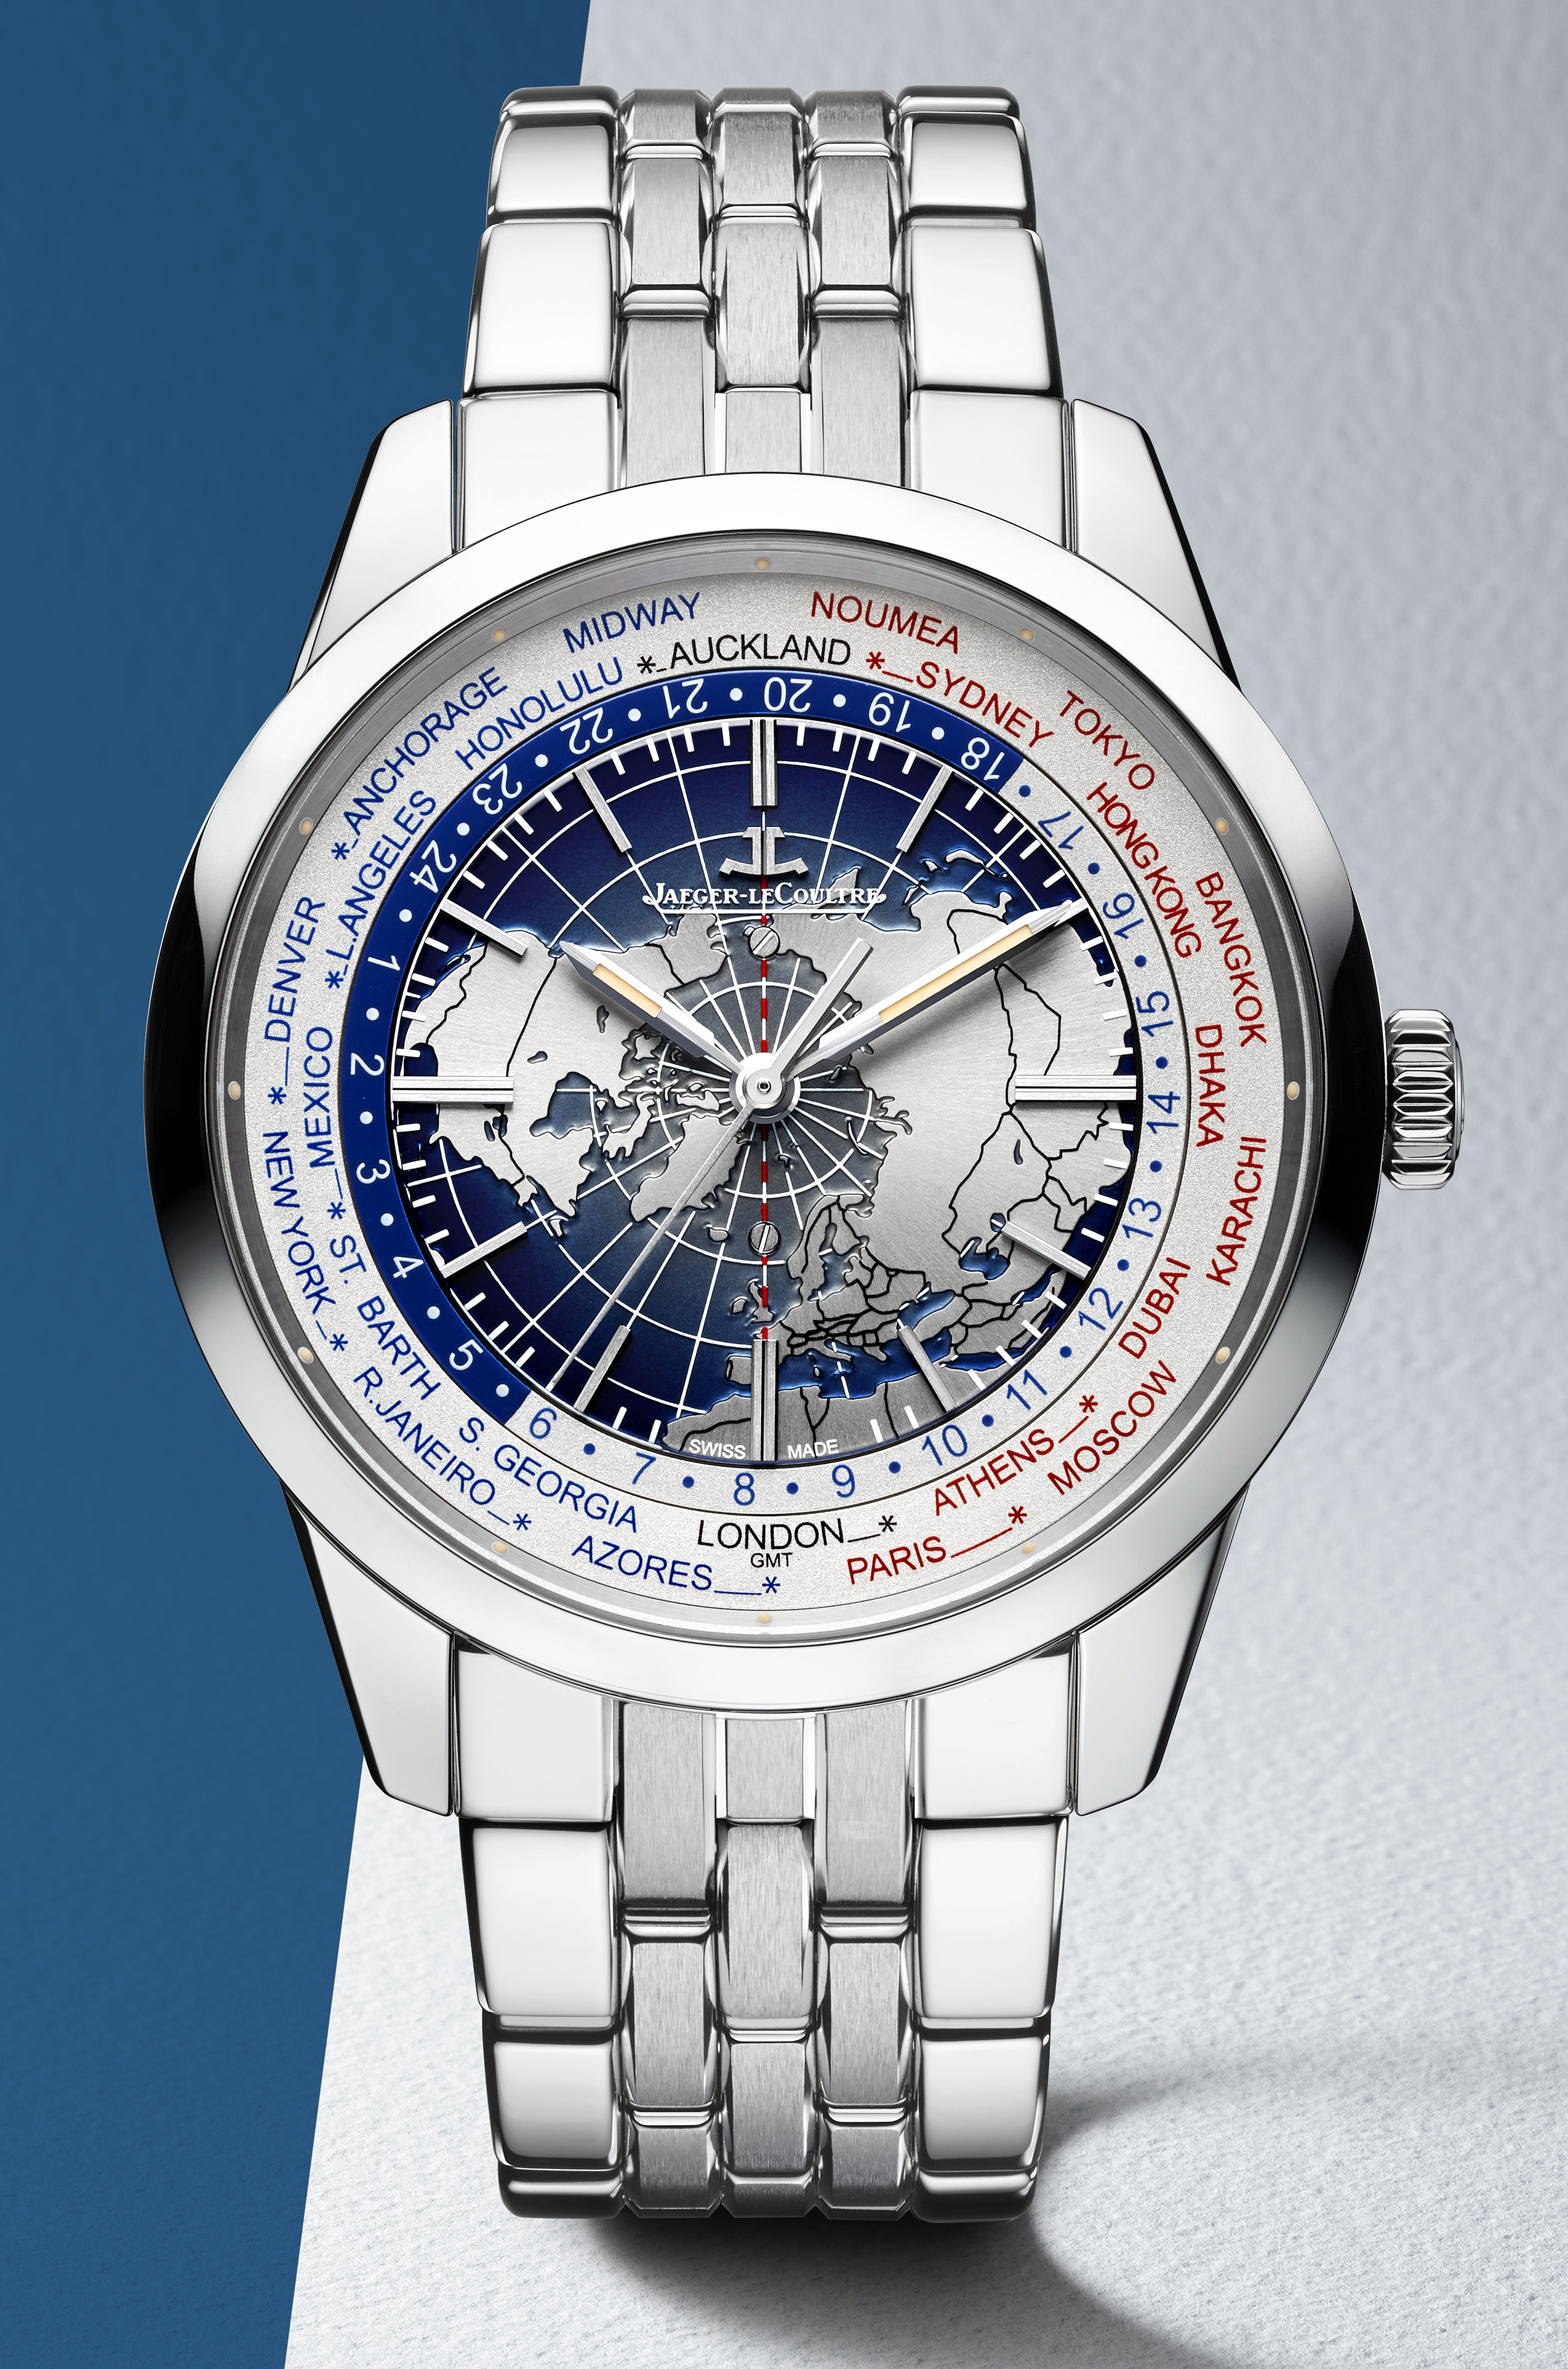 Jaeger-LeCoultre Geophysic Universal Time in steel_BG copy